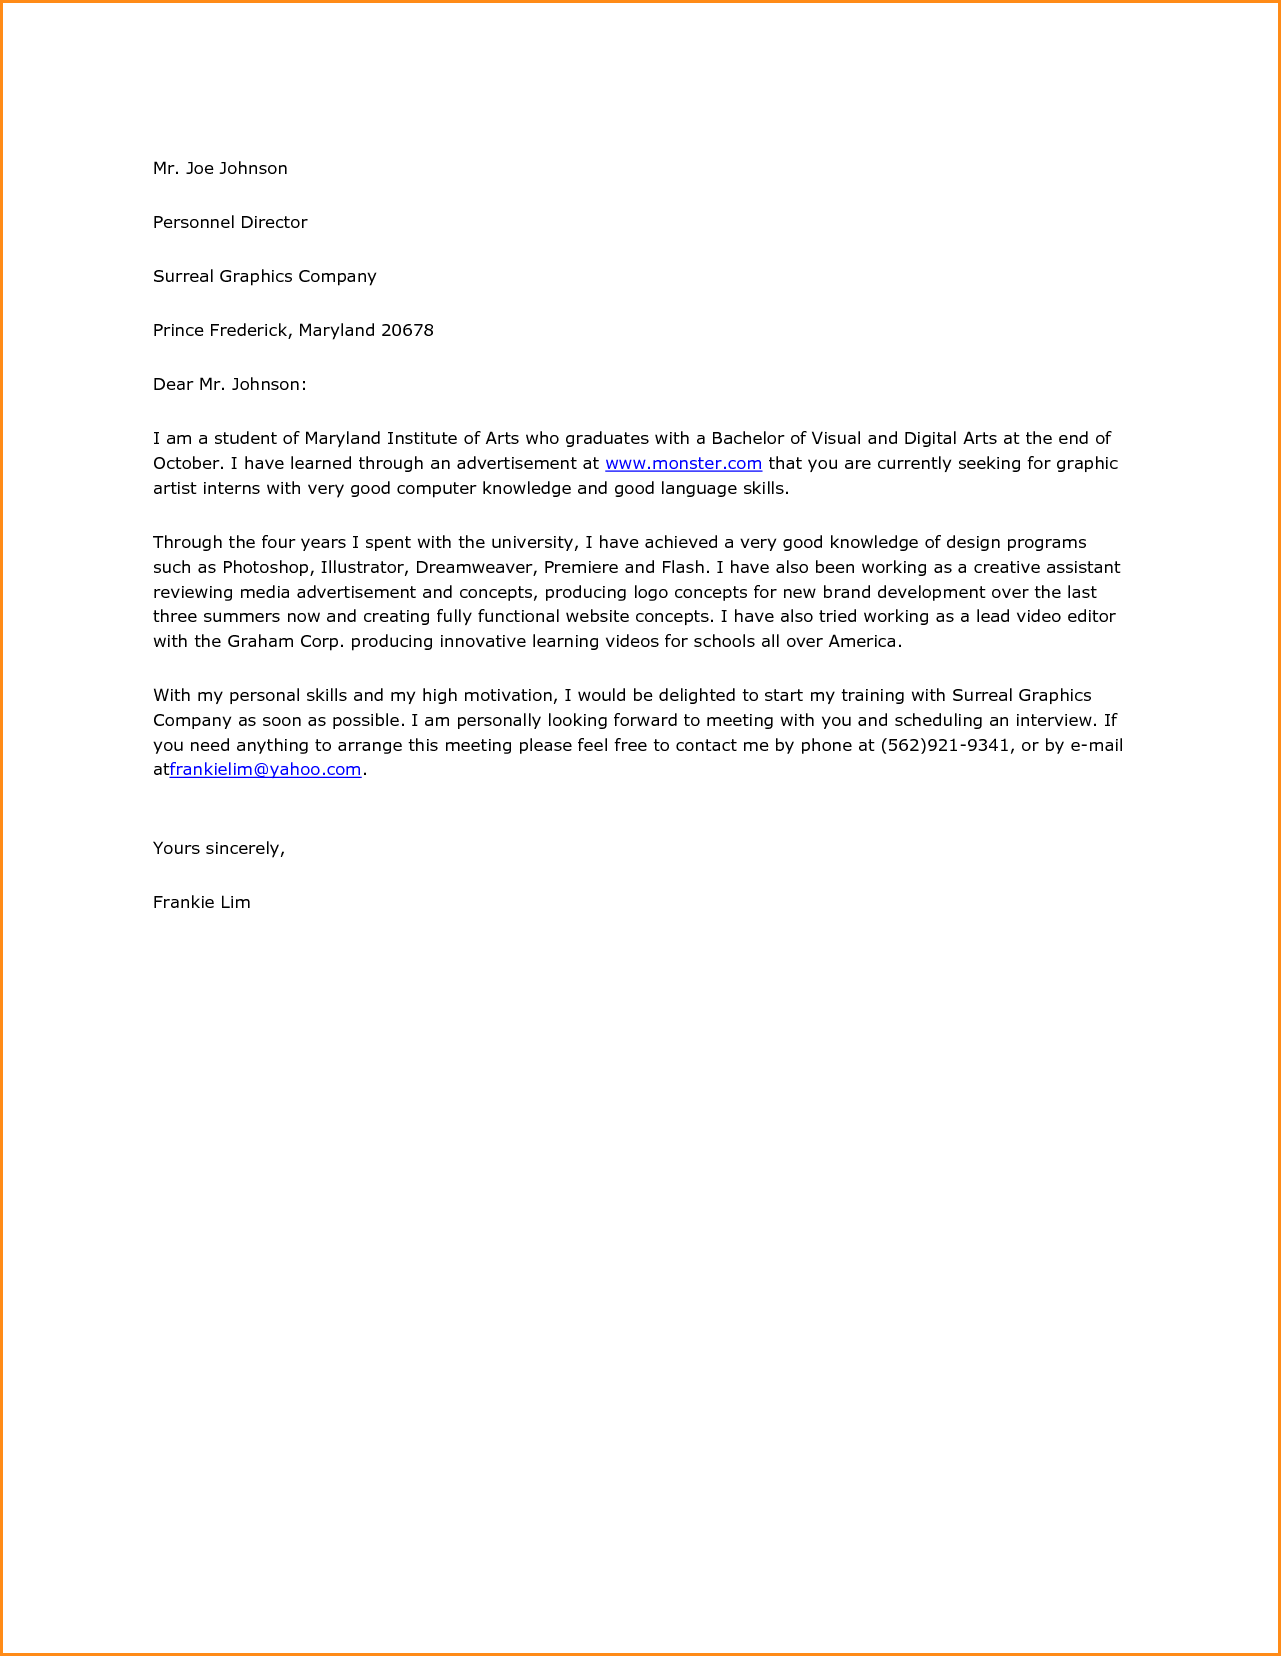 Invoice Submission Letter Sample